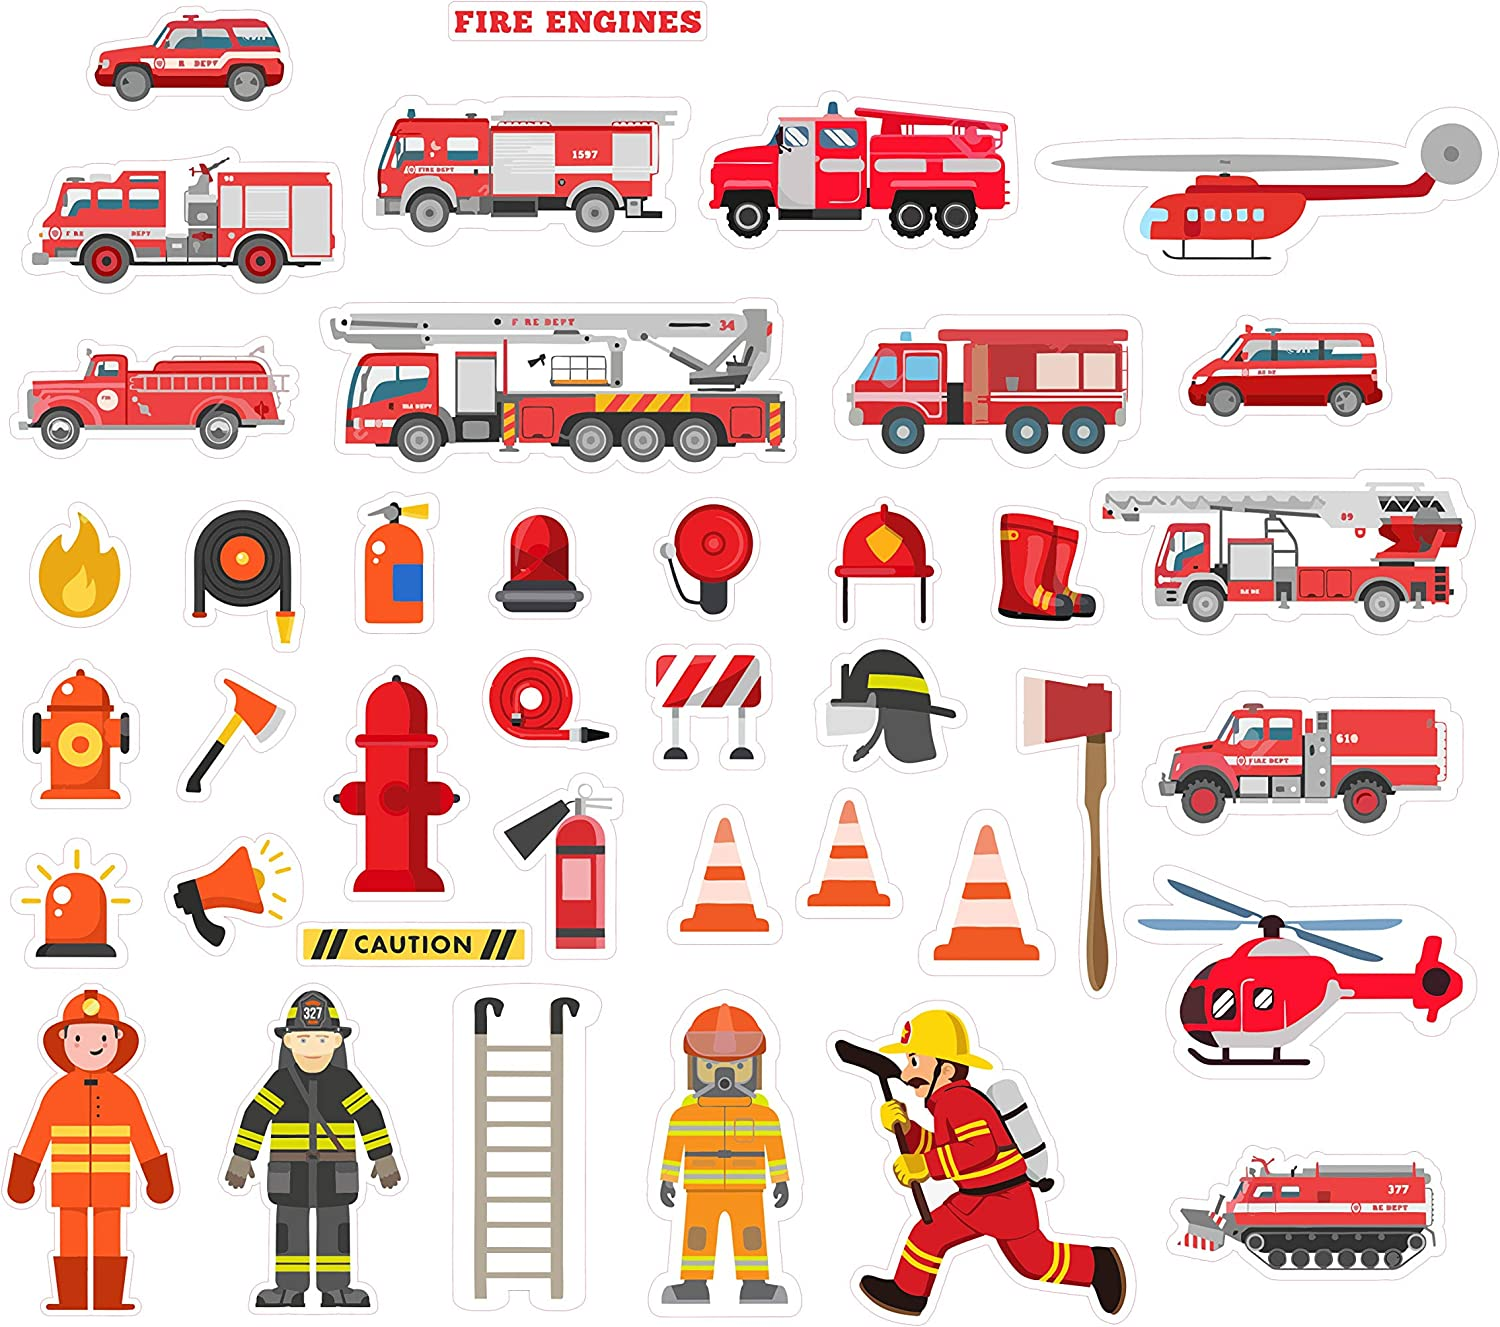 H2 Studio Firefighter Stickers for Kids, Brave Fireman Stickers & Fire Trucks for Boys Girls, Fire Engine Party Supplies, Cute Sticker Packs for Laptop, Notebook, Water Bottle, Teaching Board Pack 40